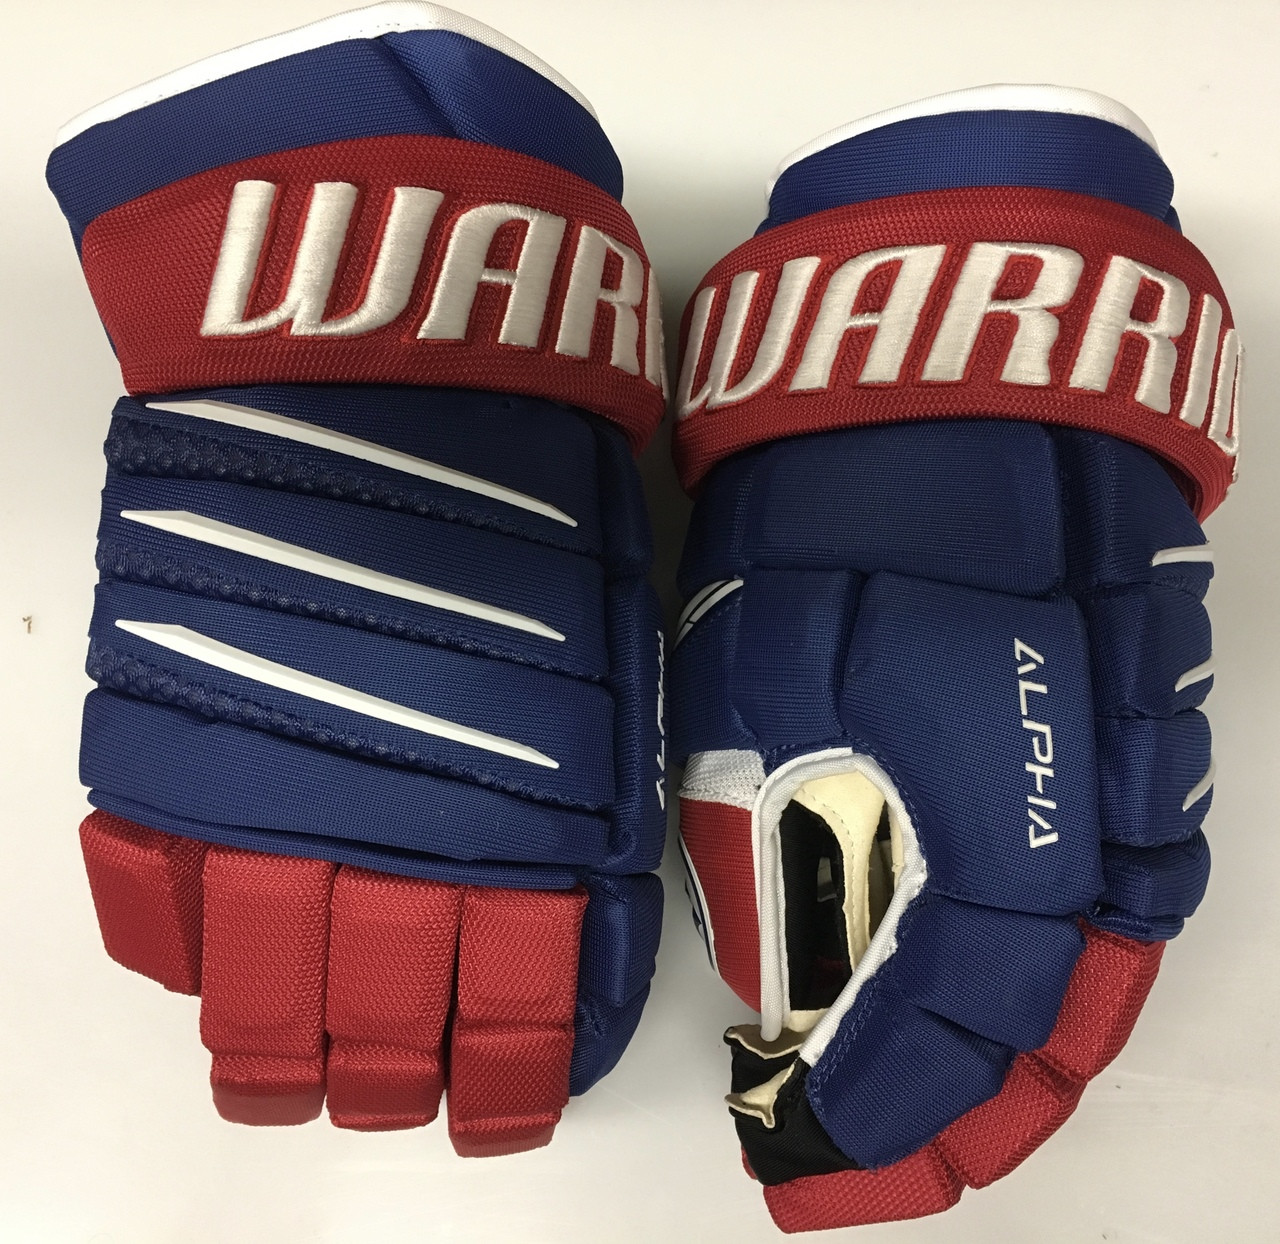 separation shoes fb8a4 a576c Warrior Alpha QX Pro Custom Pro Stock Hockey Gloves Montreal Canadiens 14